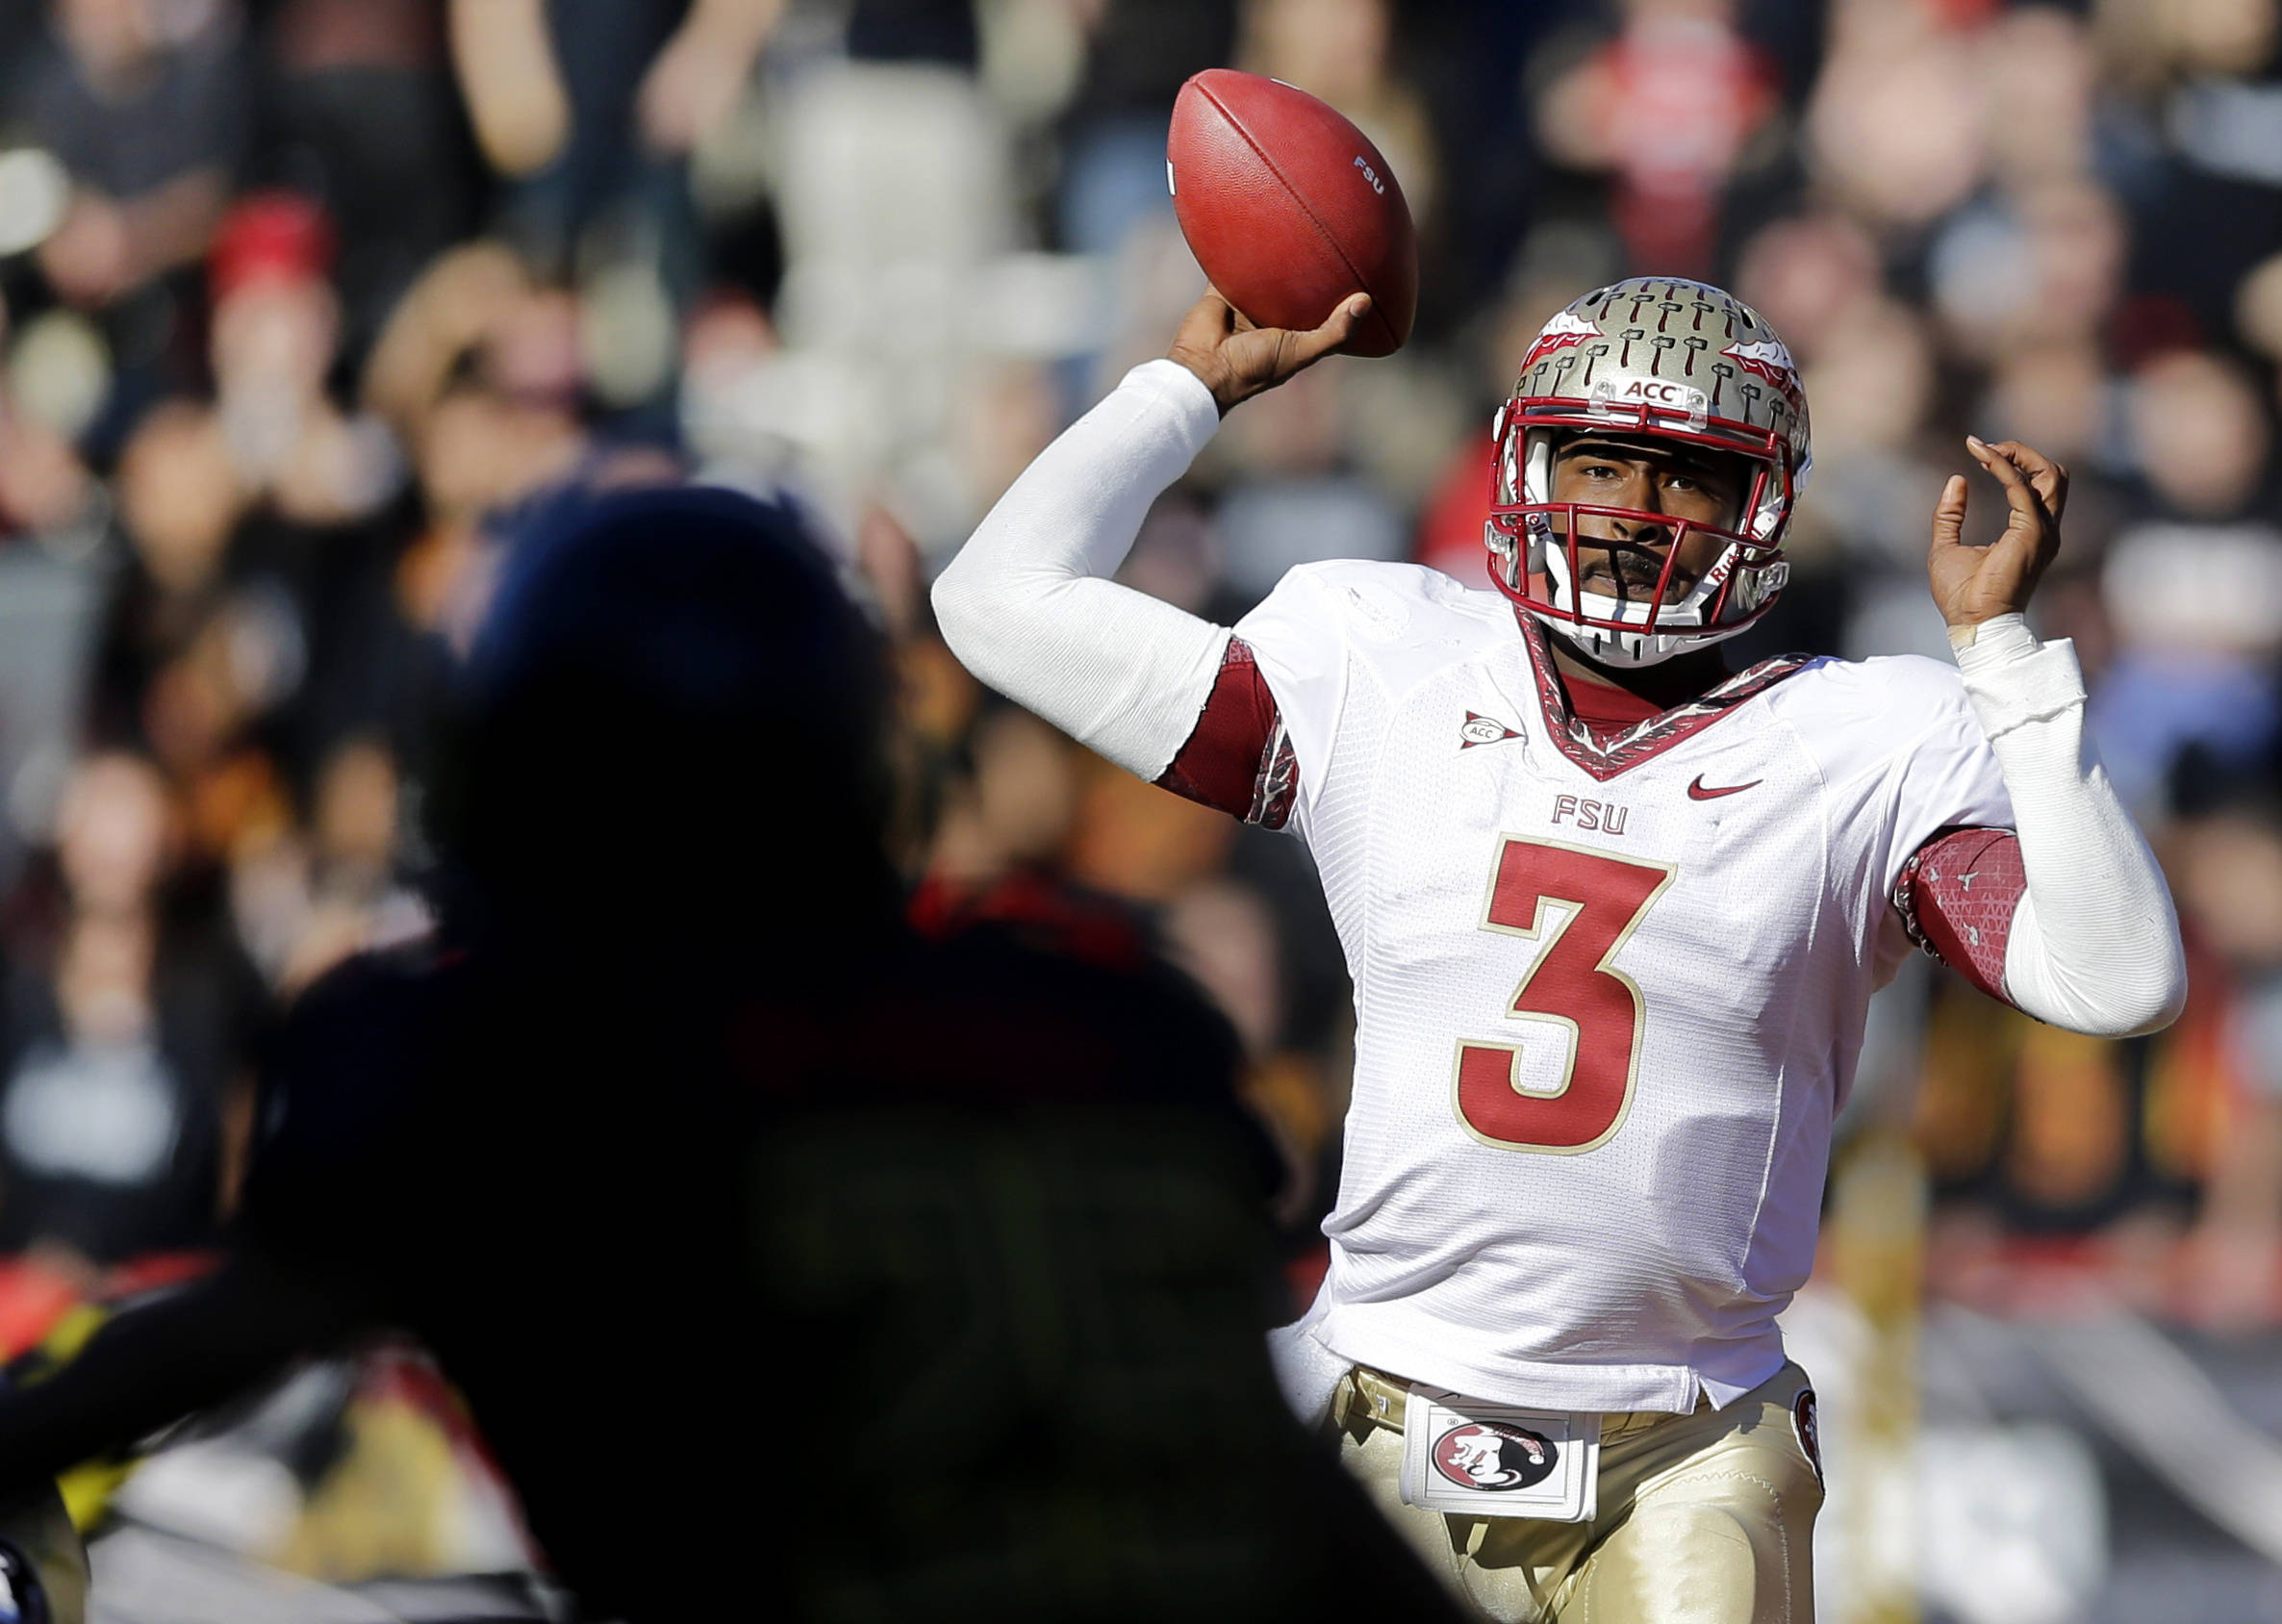 Quarterback EJ Manuel throws to a receiver in the first half of an NCAA college football game against Maryland in College Park, Md., Saturday, Nov. 17, 2012. (AP Photo/Patrick Semansky)